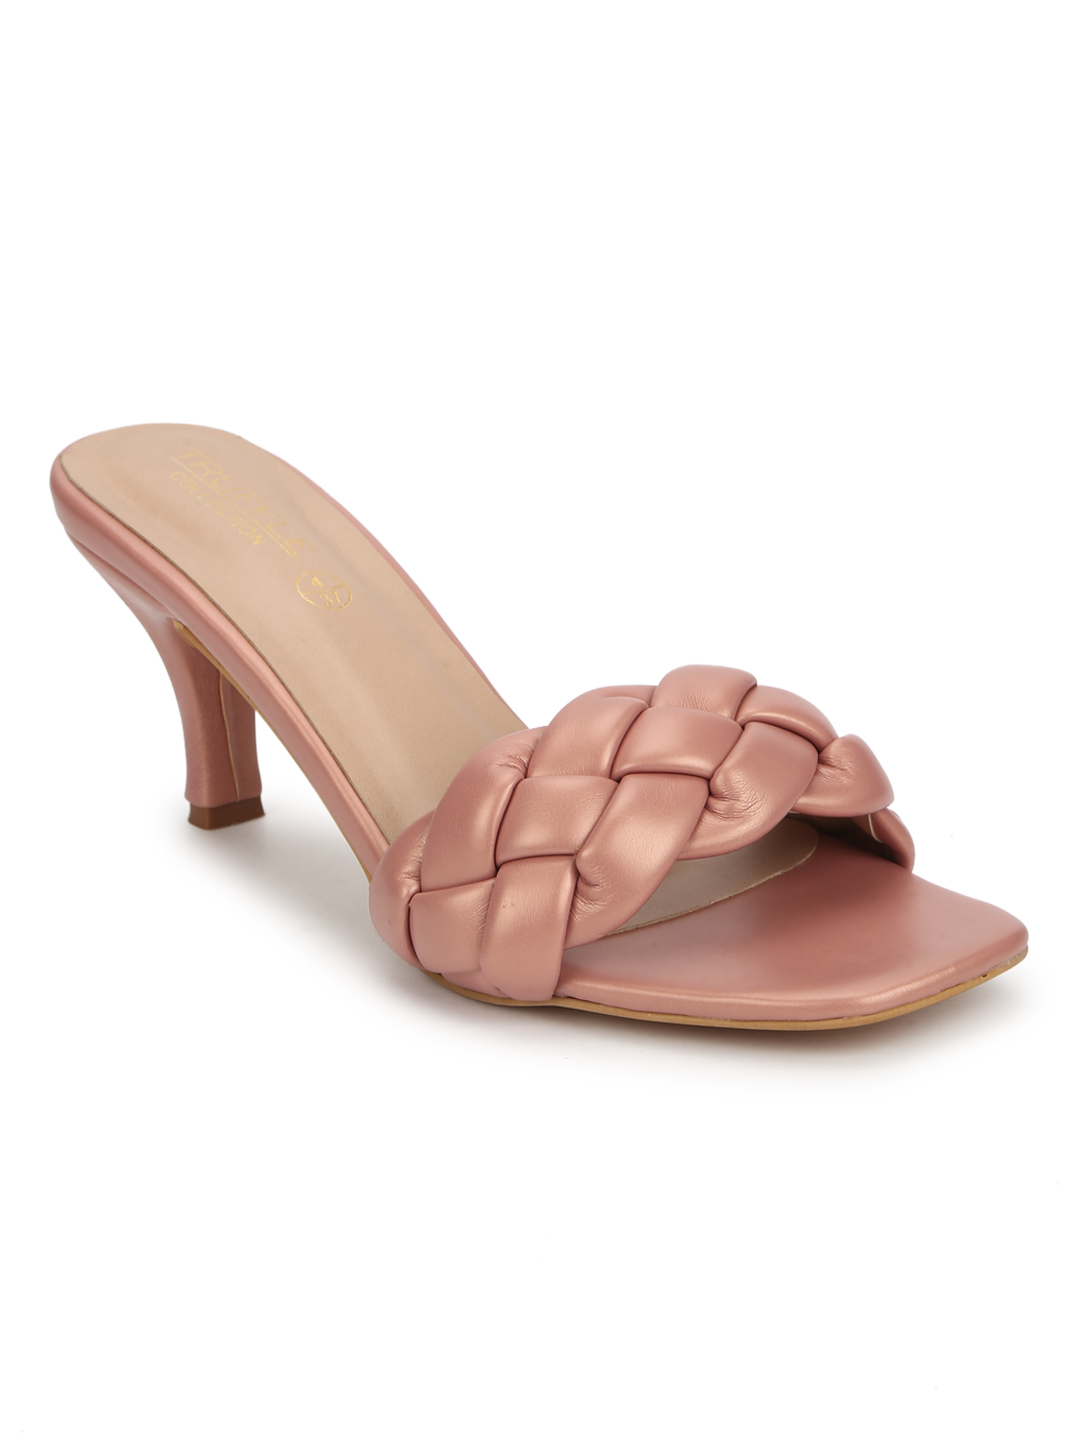 Truffle Collection | Truffle Collection Nude PU Braided Kitten Heels